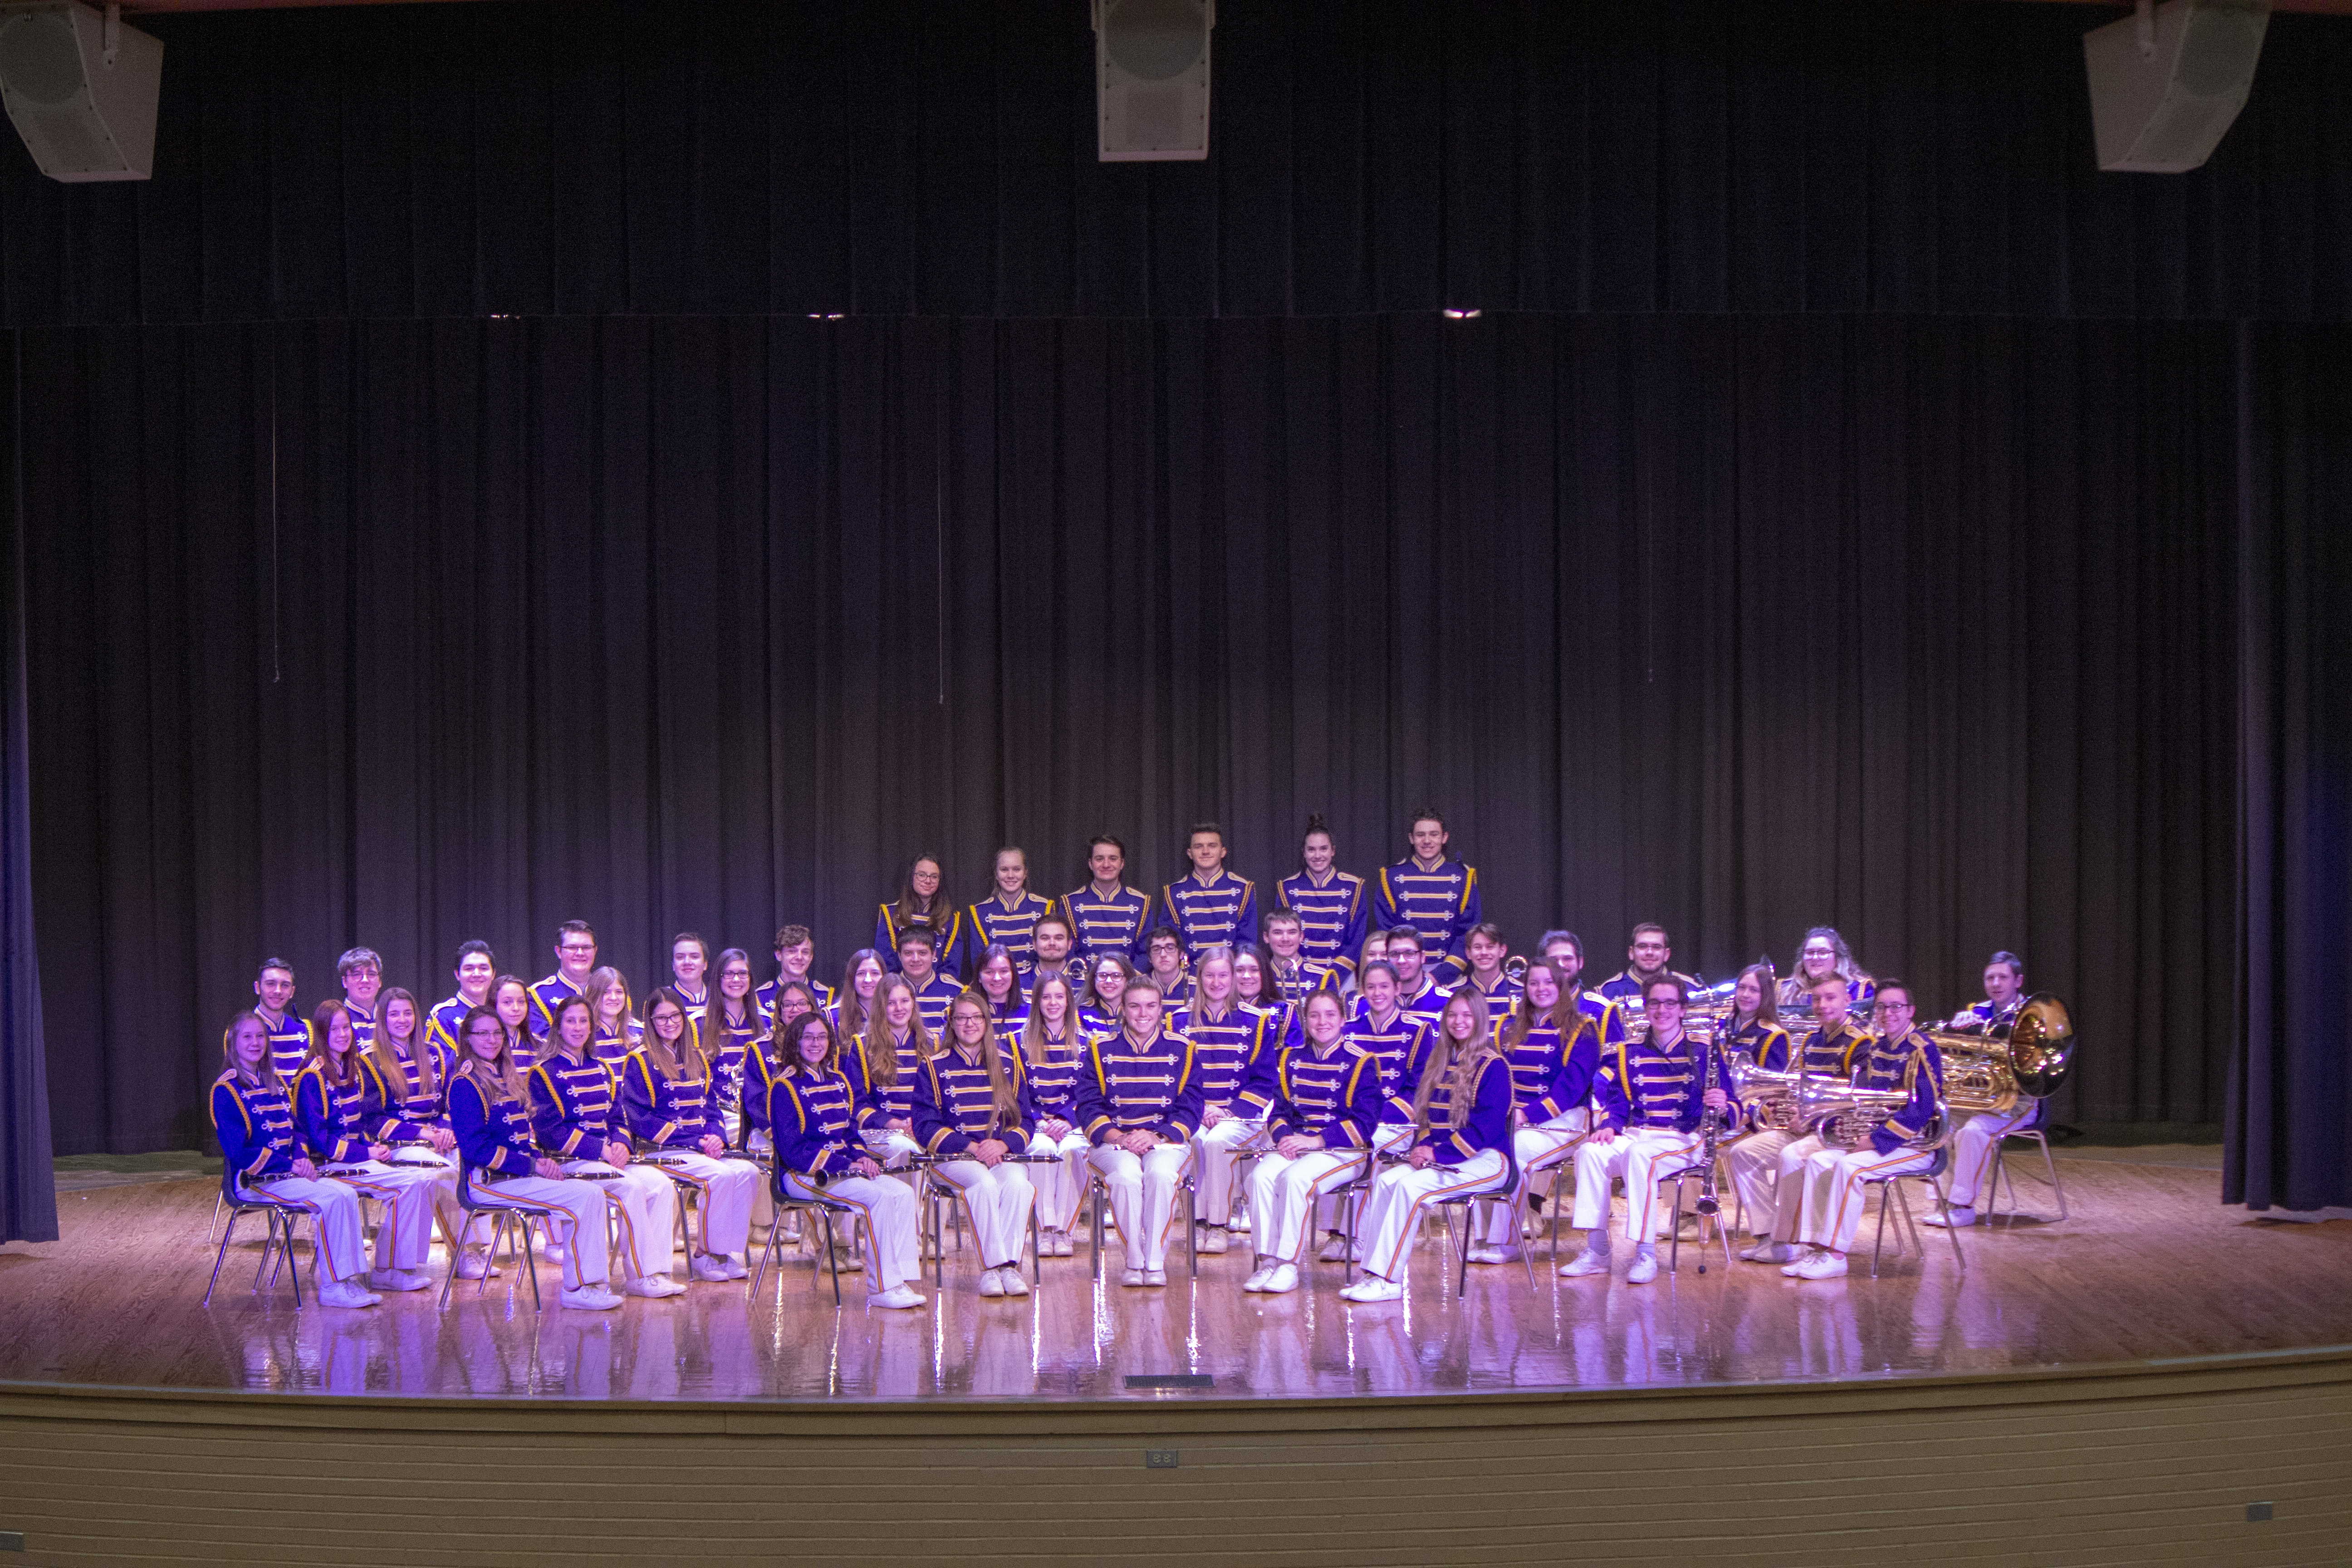 Group photo of the Symphonic Band